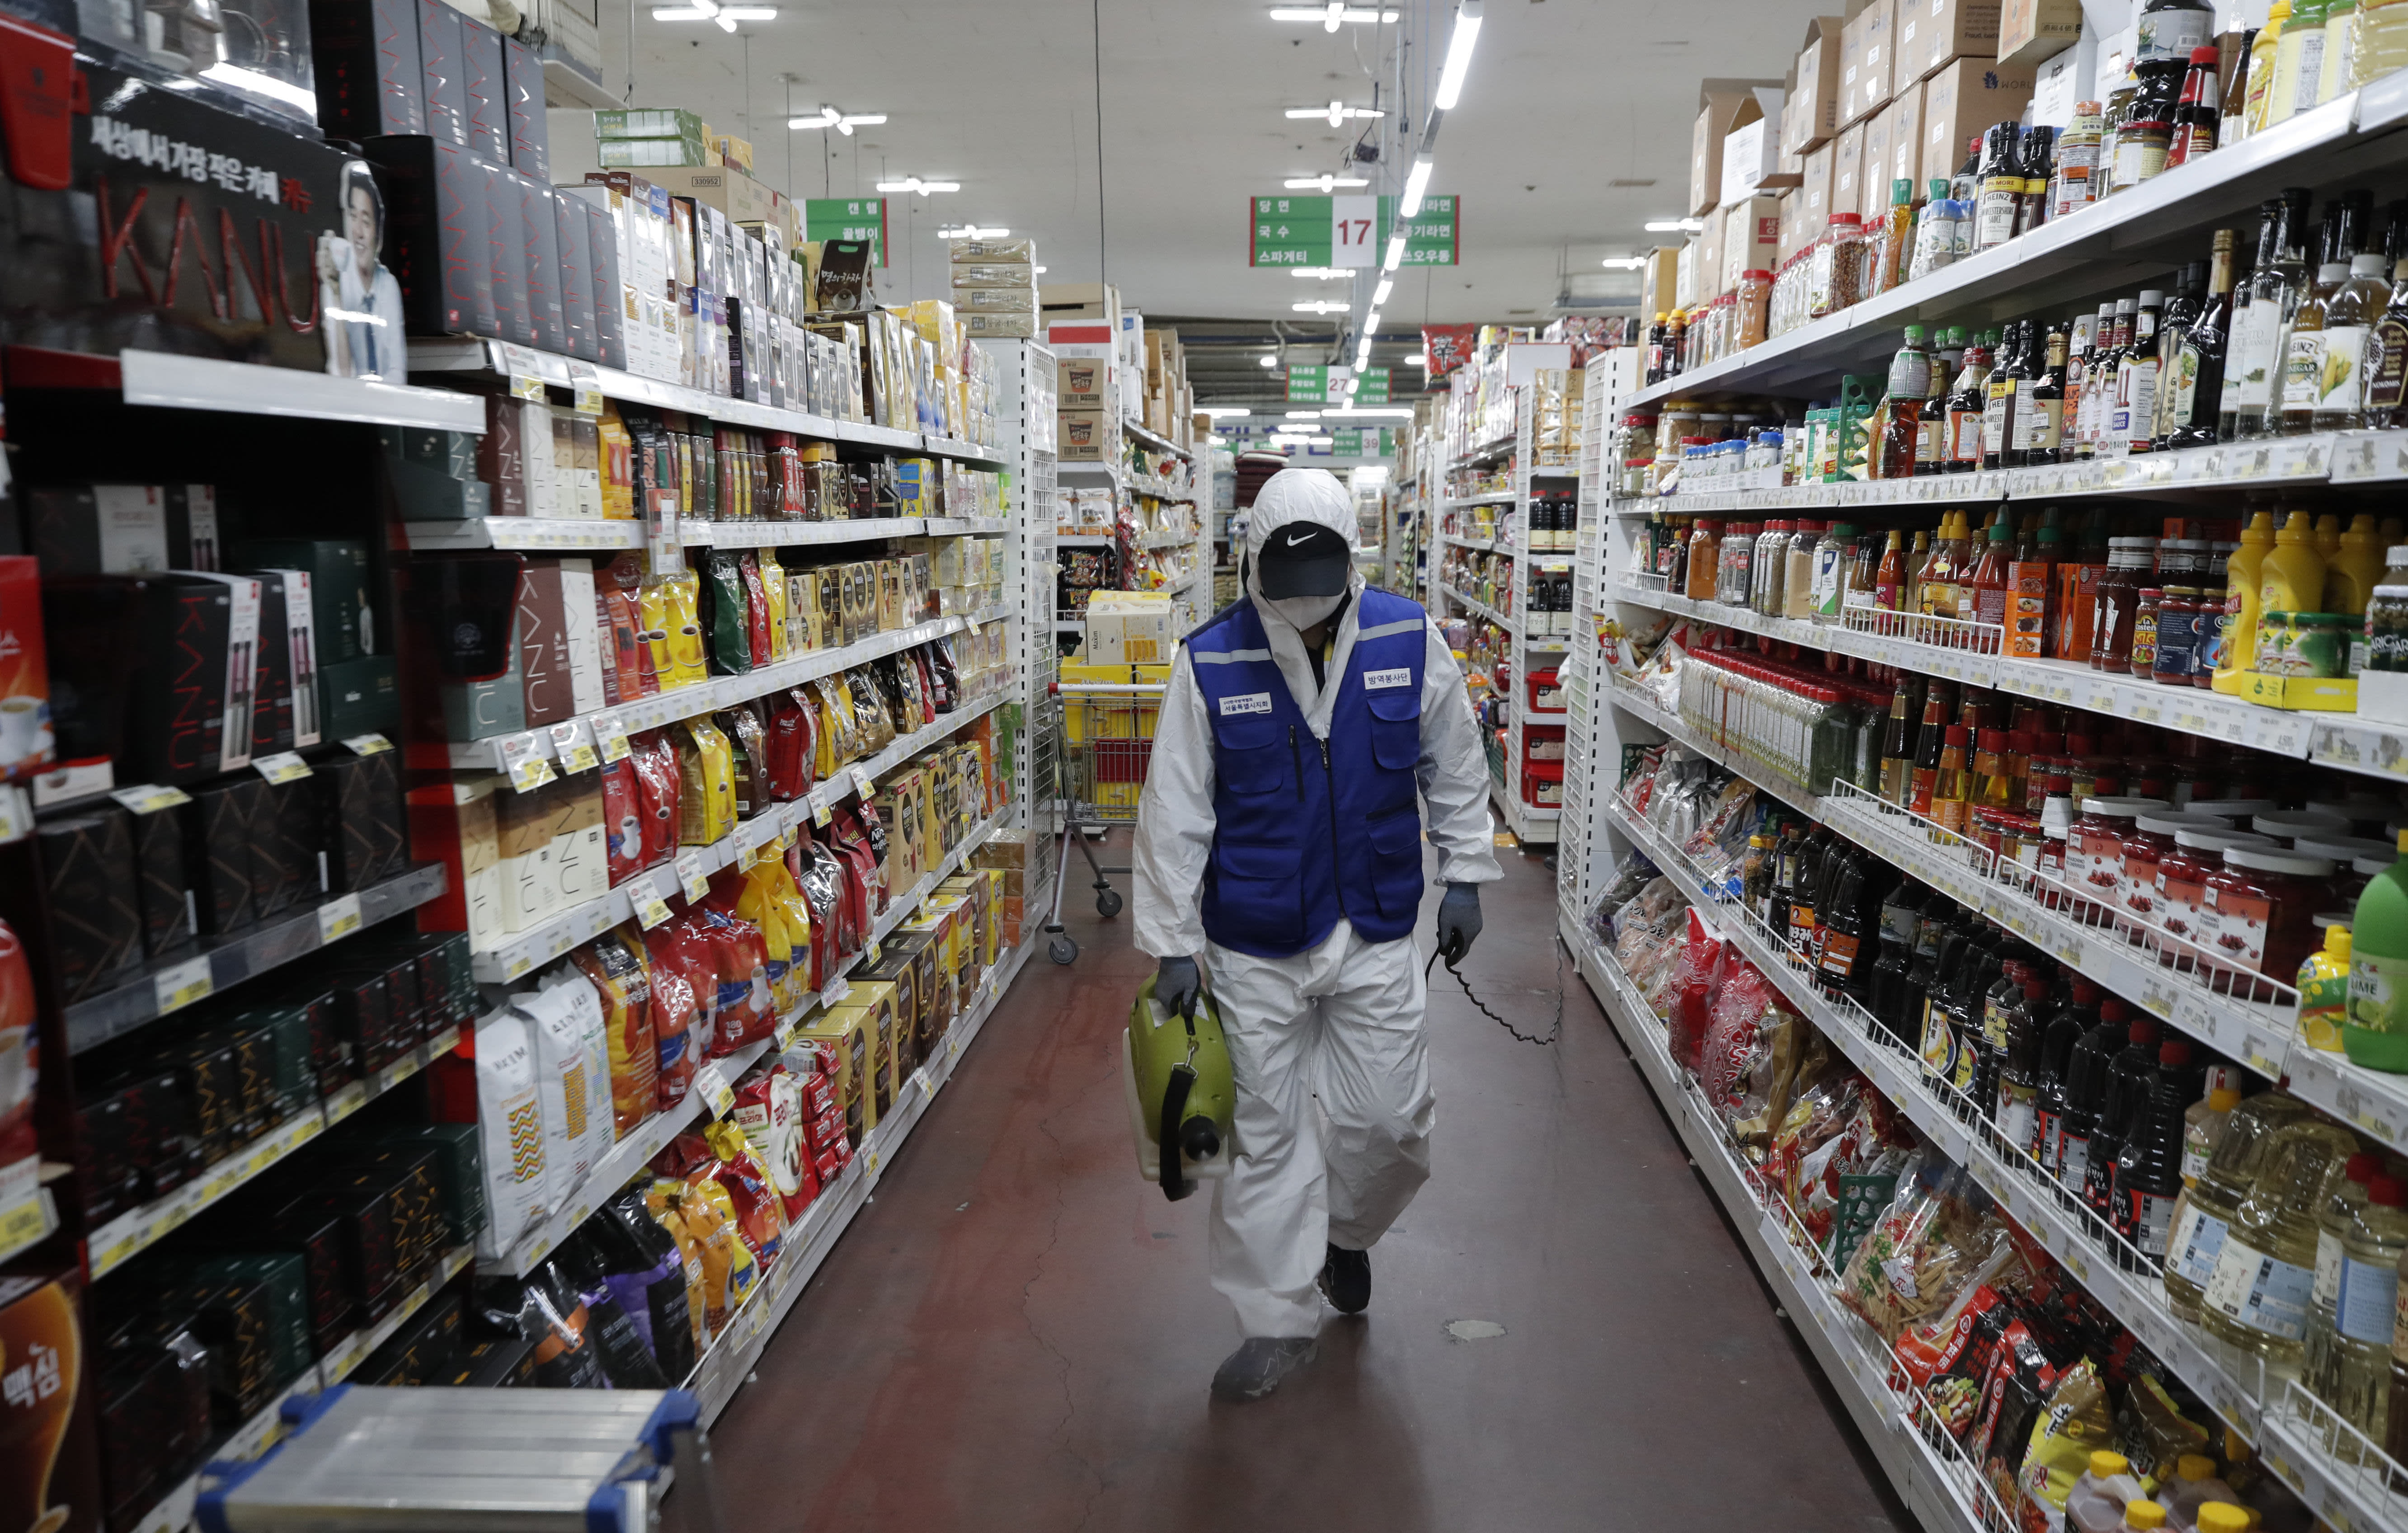 A worker wearing a protective suit sprays disinfectant as a precaution against the COVID-19 at a market in Seoul, South Korea, Thursday, Feb. 27, 2020. (AP Photo/Lee Jin-man)